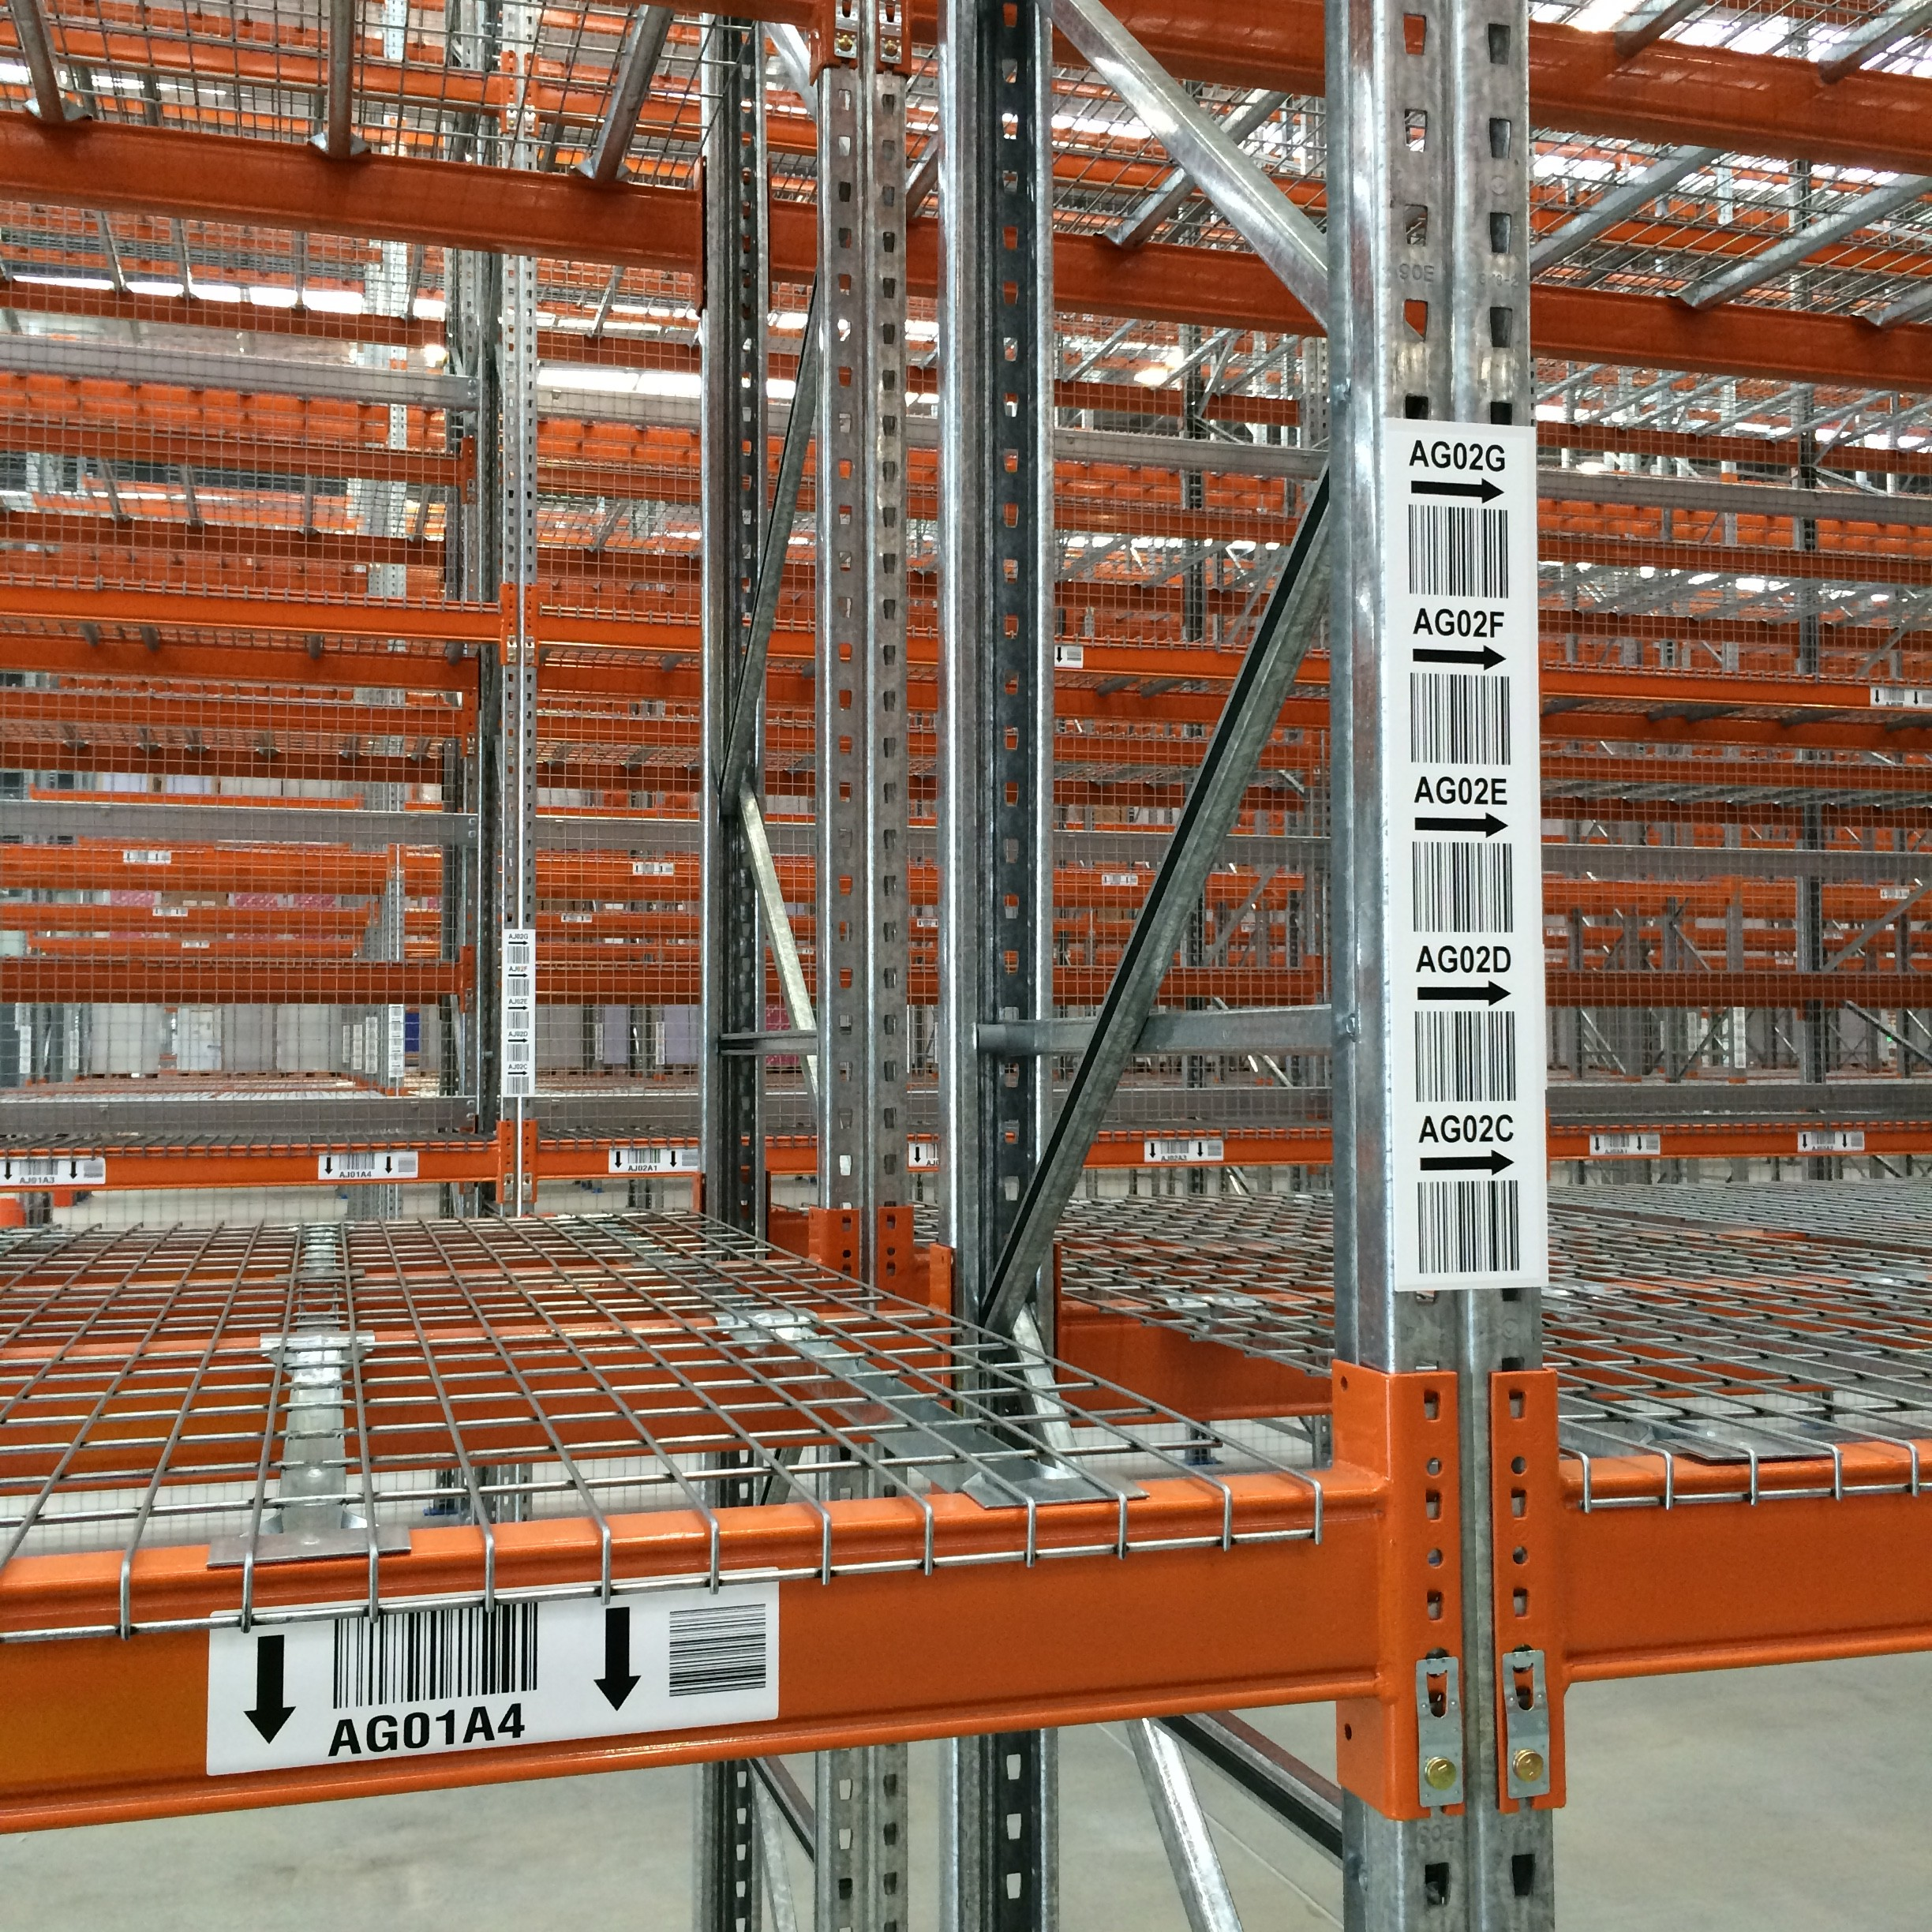 Spicers Racking Labels Upright and Horizontal